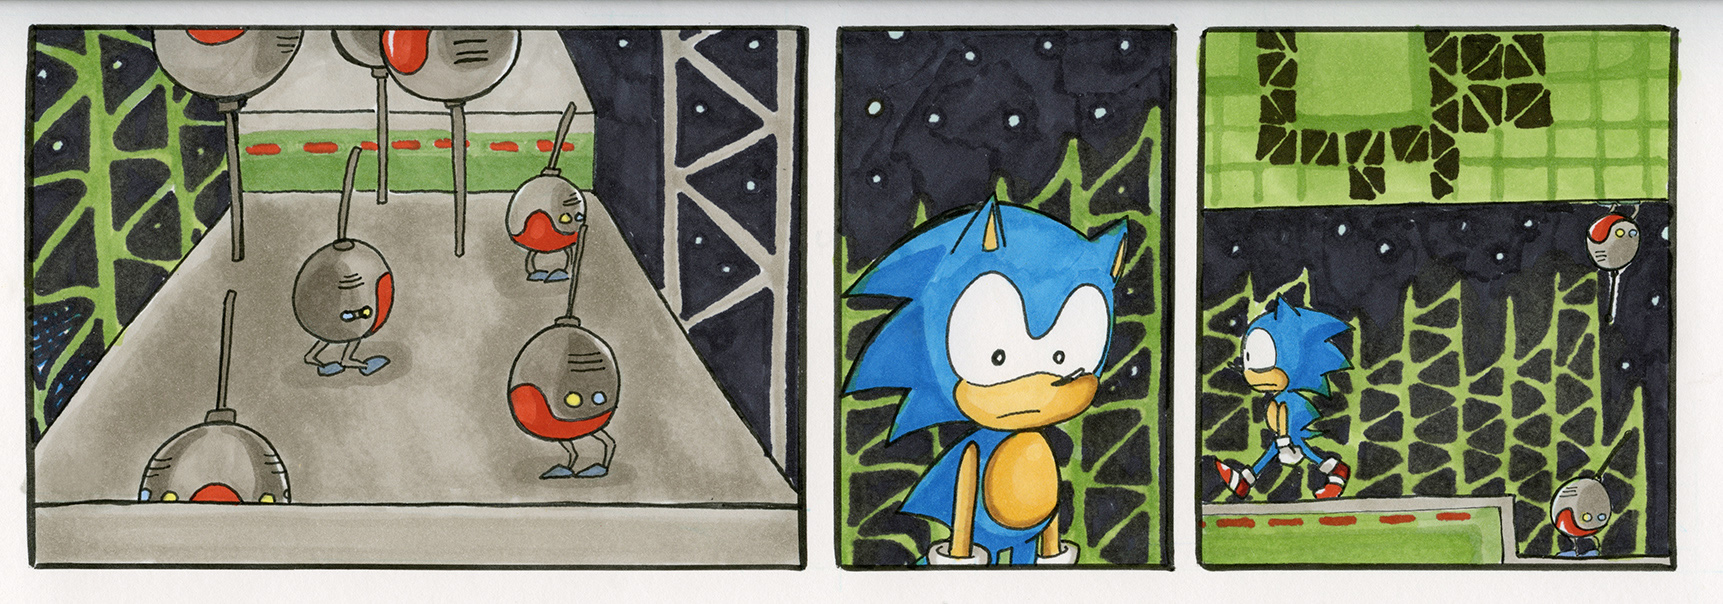 Sonic the Hedgehog 1: Star Light Zone, Act 2